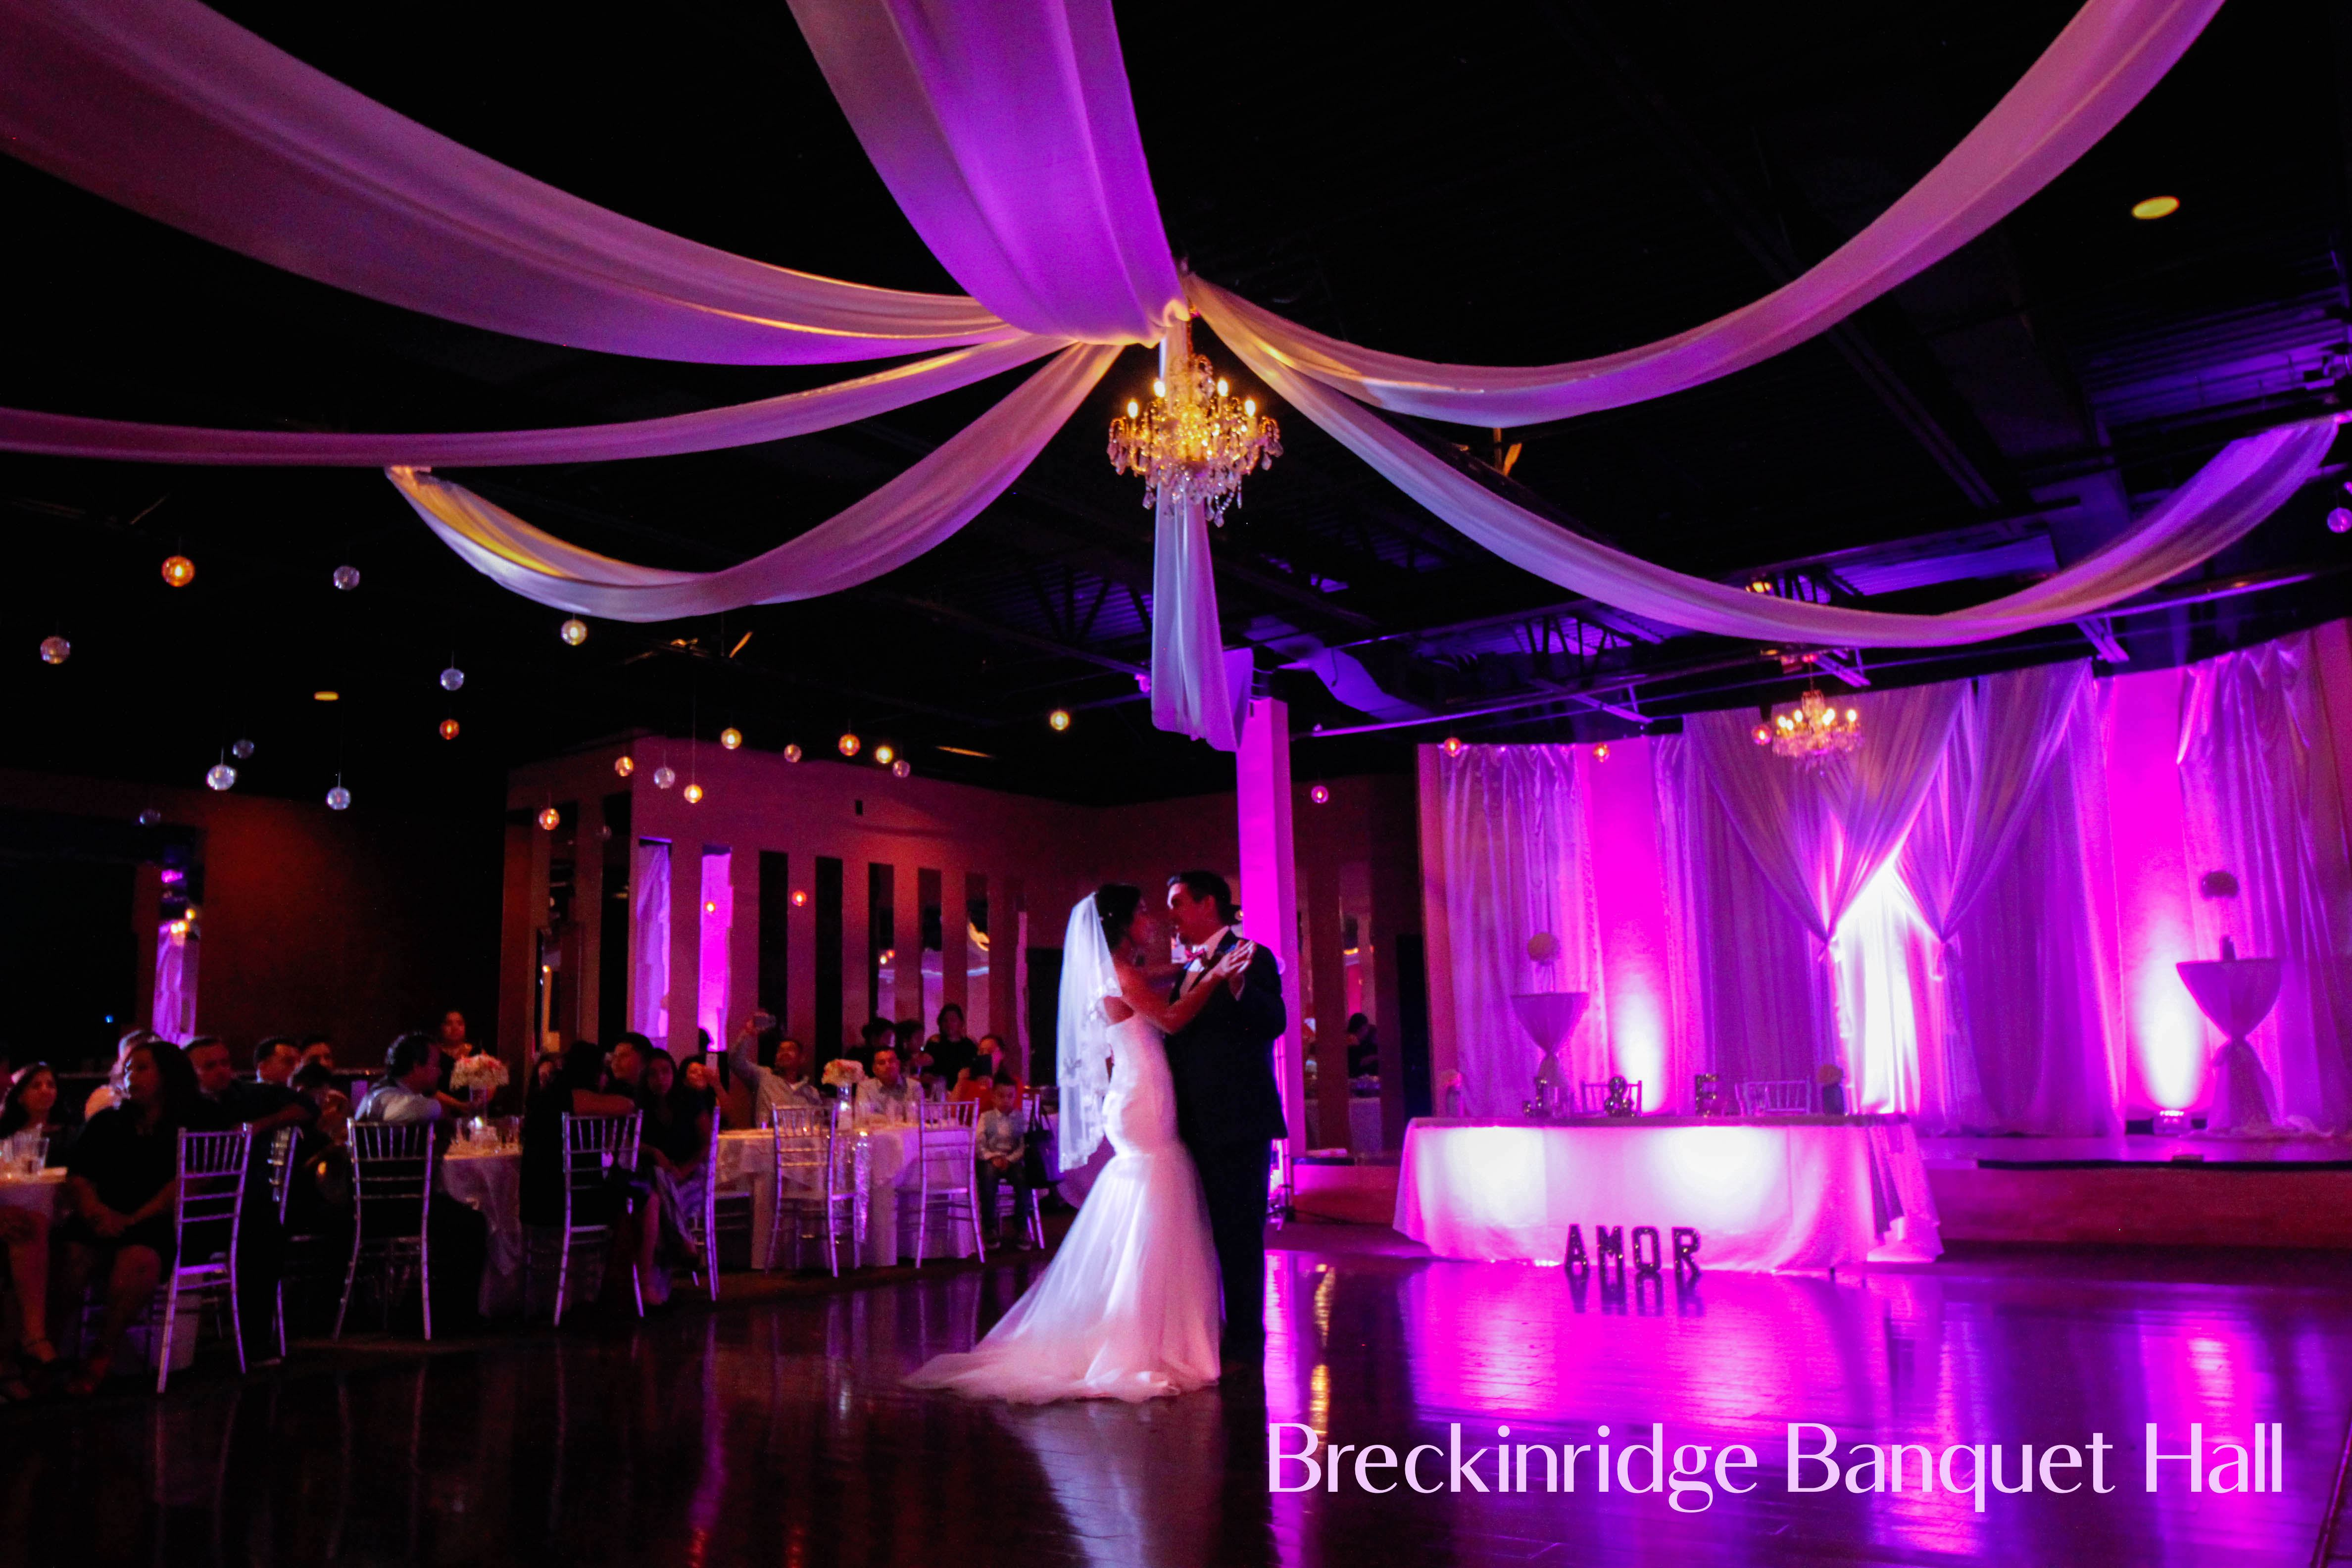 Breckenridge Banquet Hall - 2